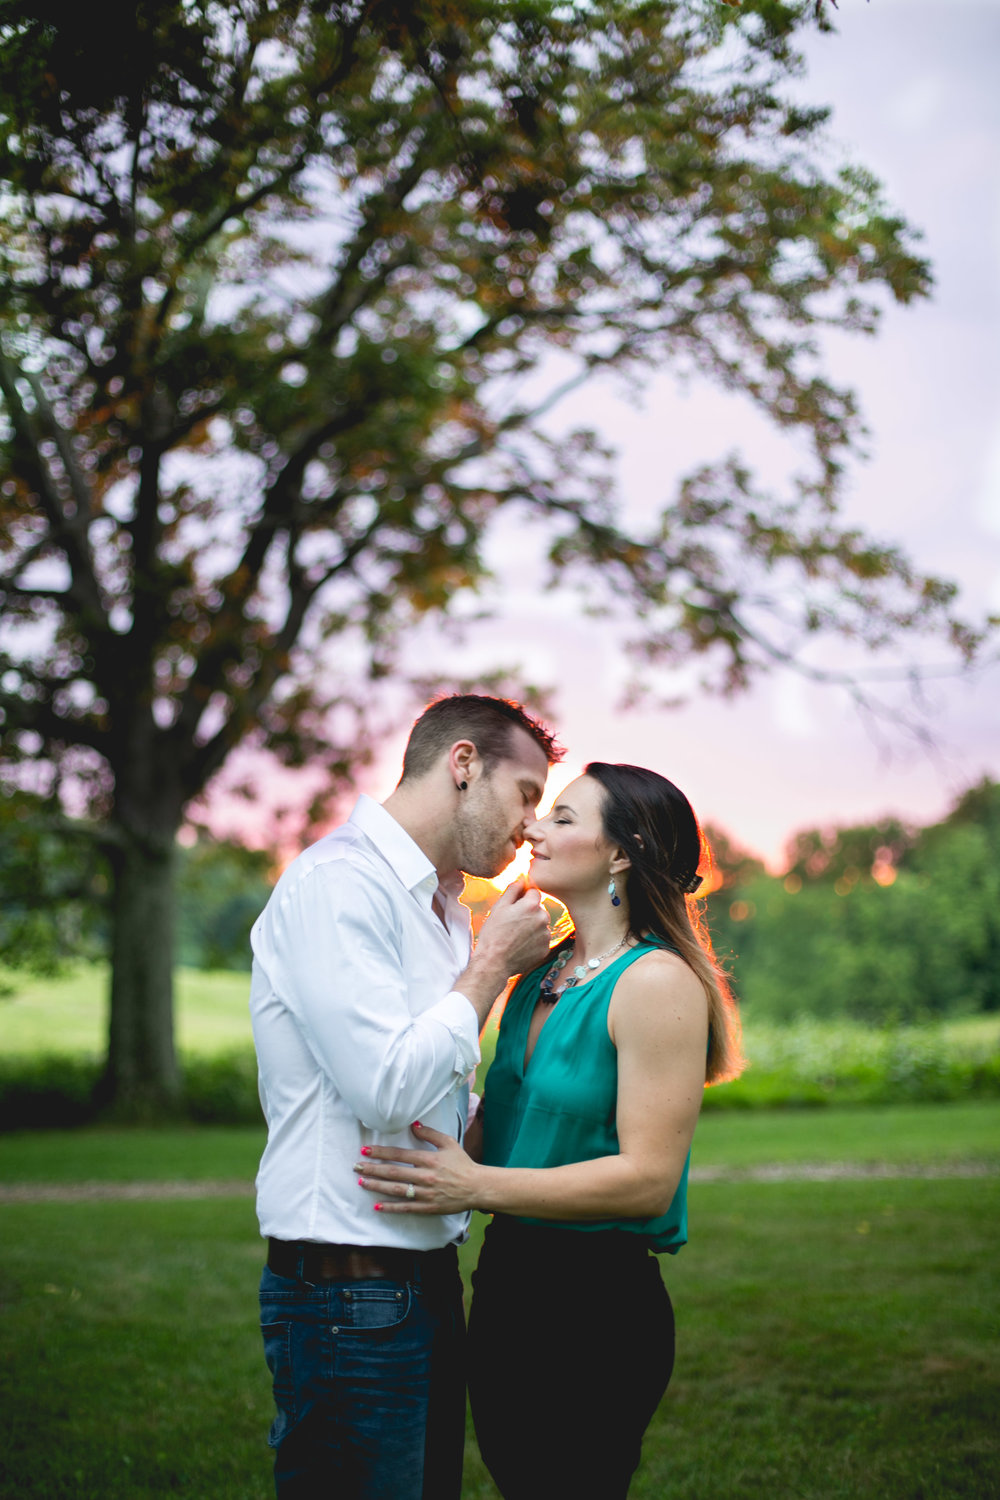 These two lucked out and got all the glow and sunset prettiness at their engagement session!